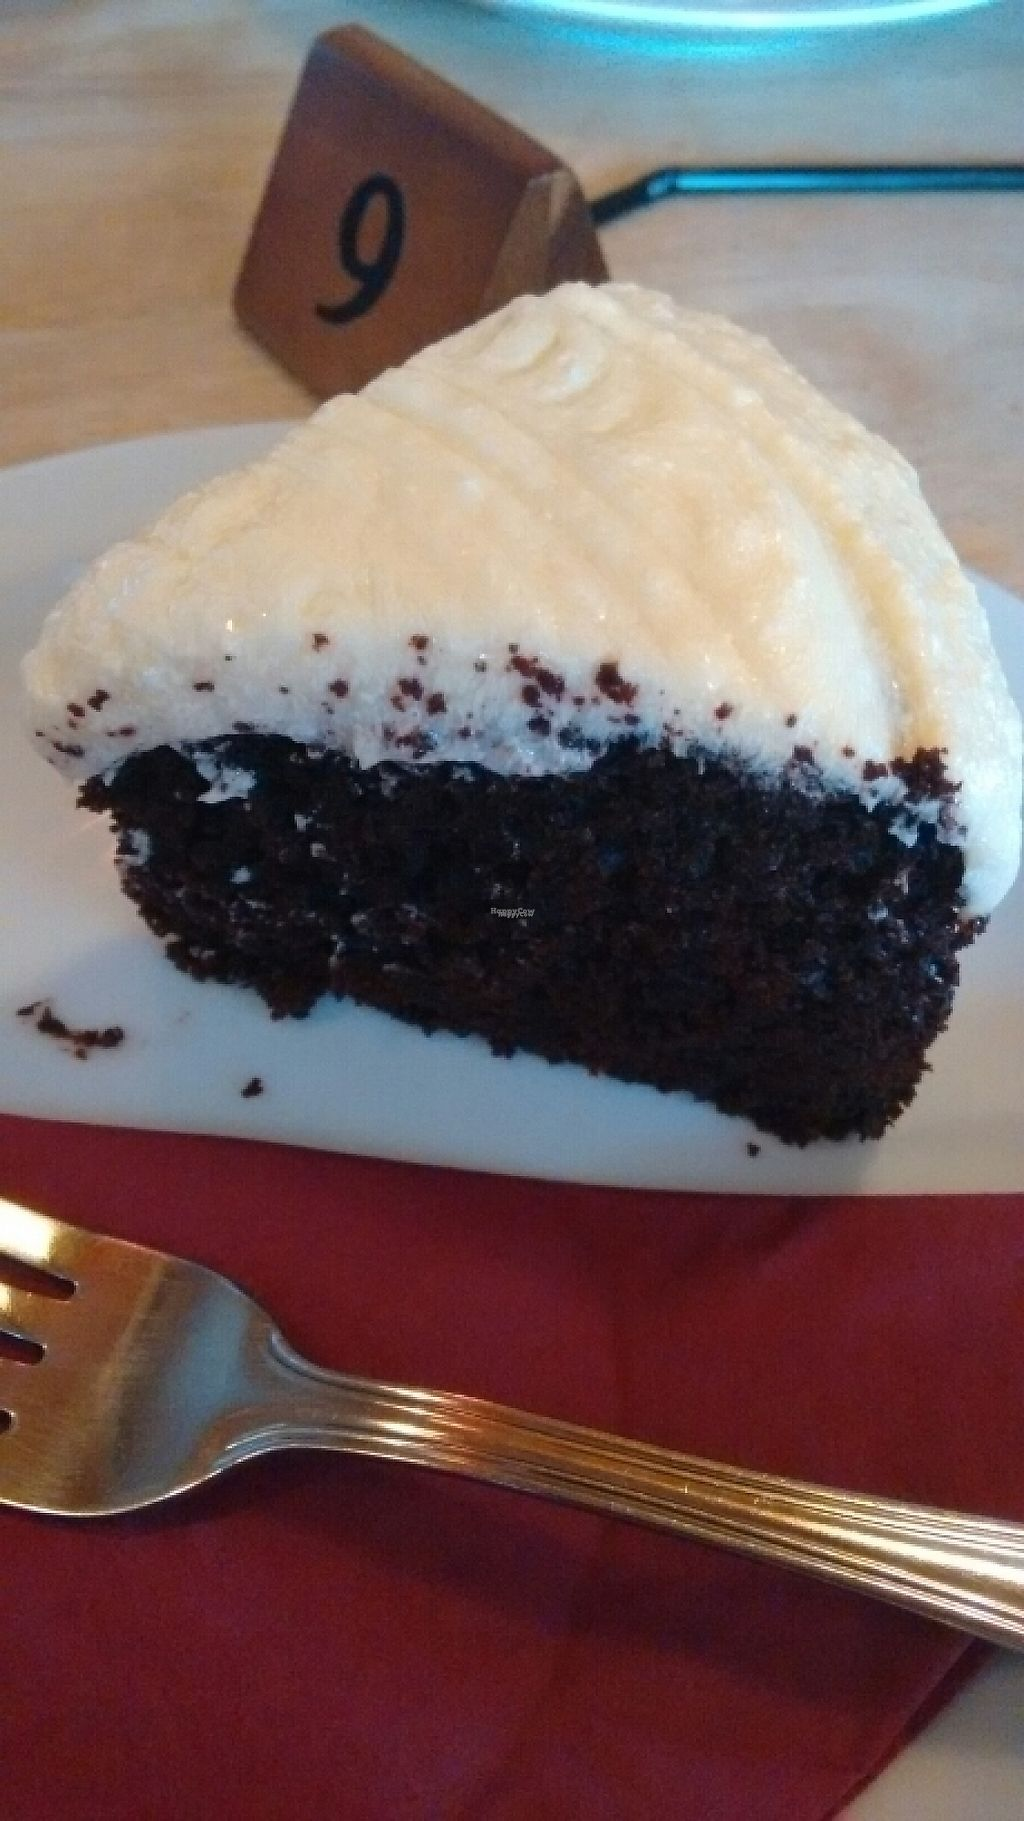 """Photo of Kat's Kitchen  by <a href=""""/members/profile/craigmc"""">craigmc</a> <br/>vegan chocolate cake with mint icing <br/> December 30, 2016  - <a href='/contact/abuse/image/79734/206203'>Report</a>"""